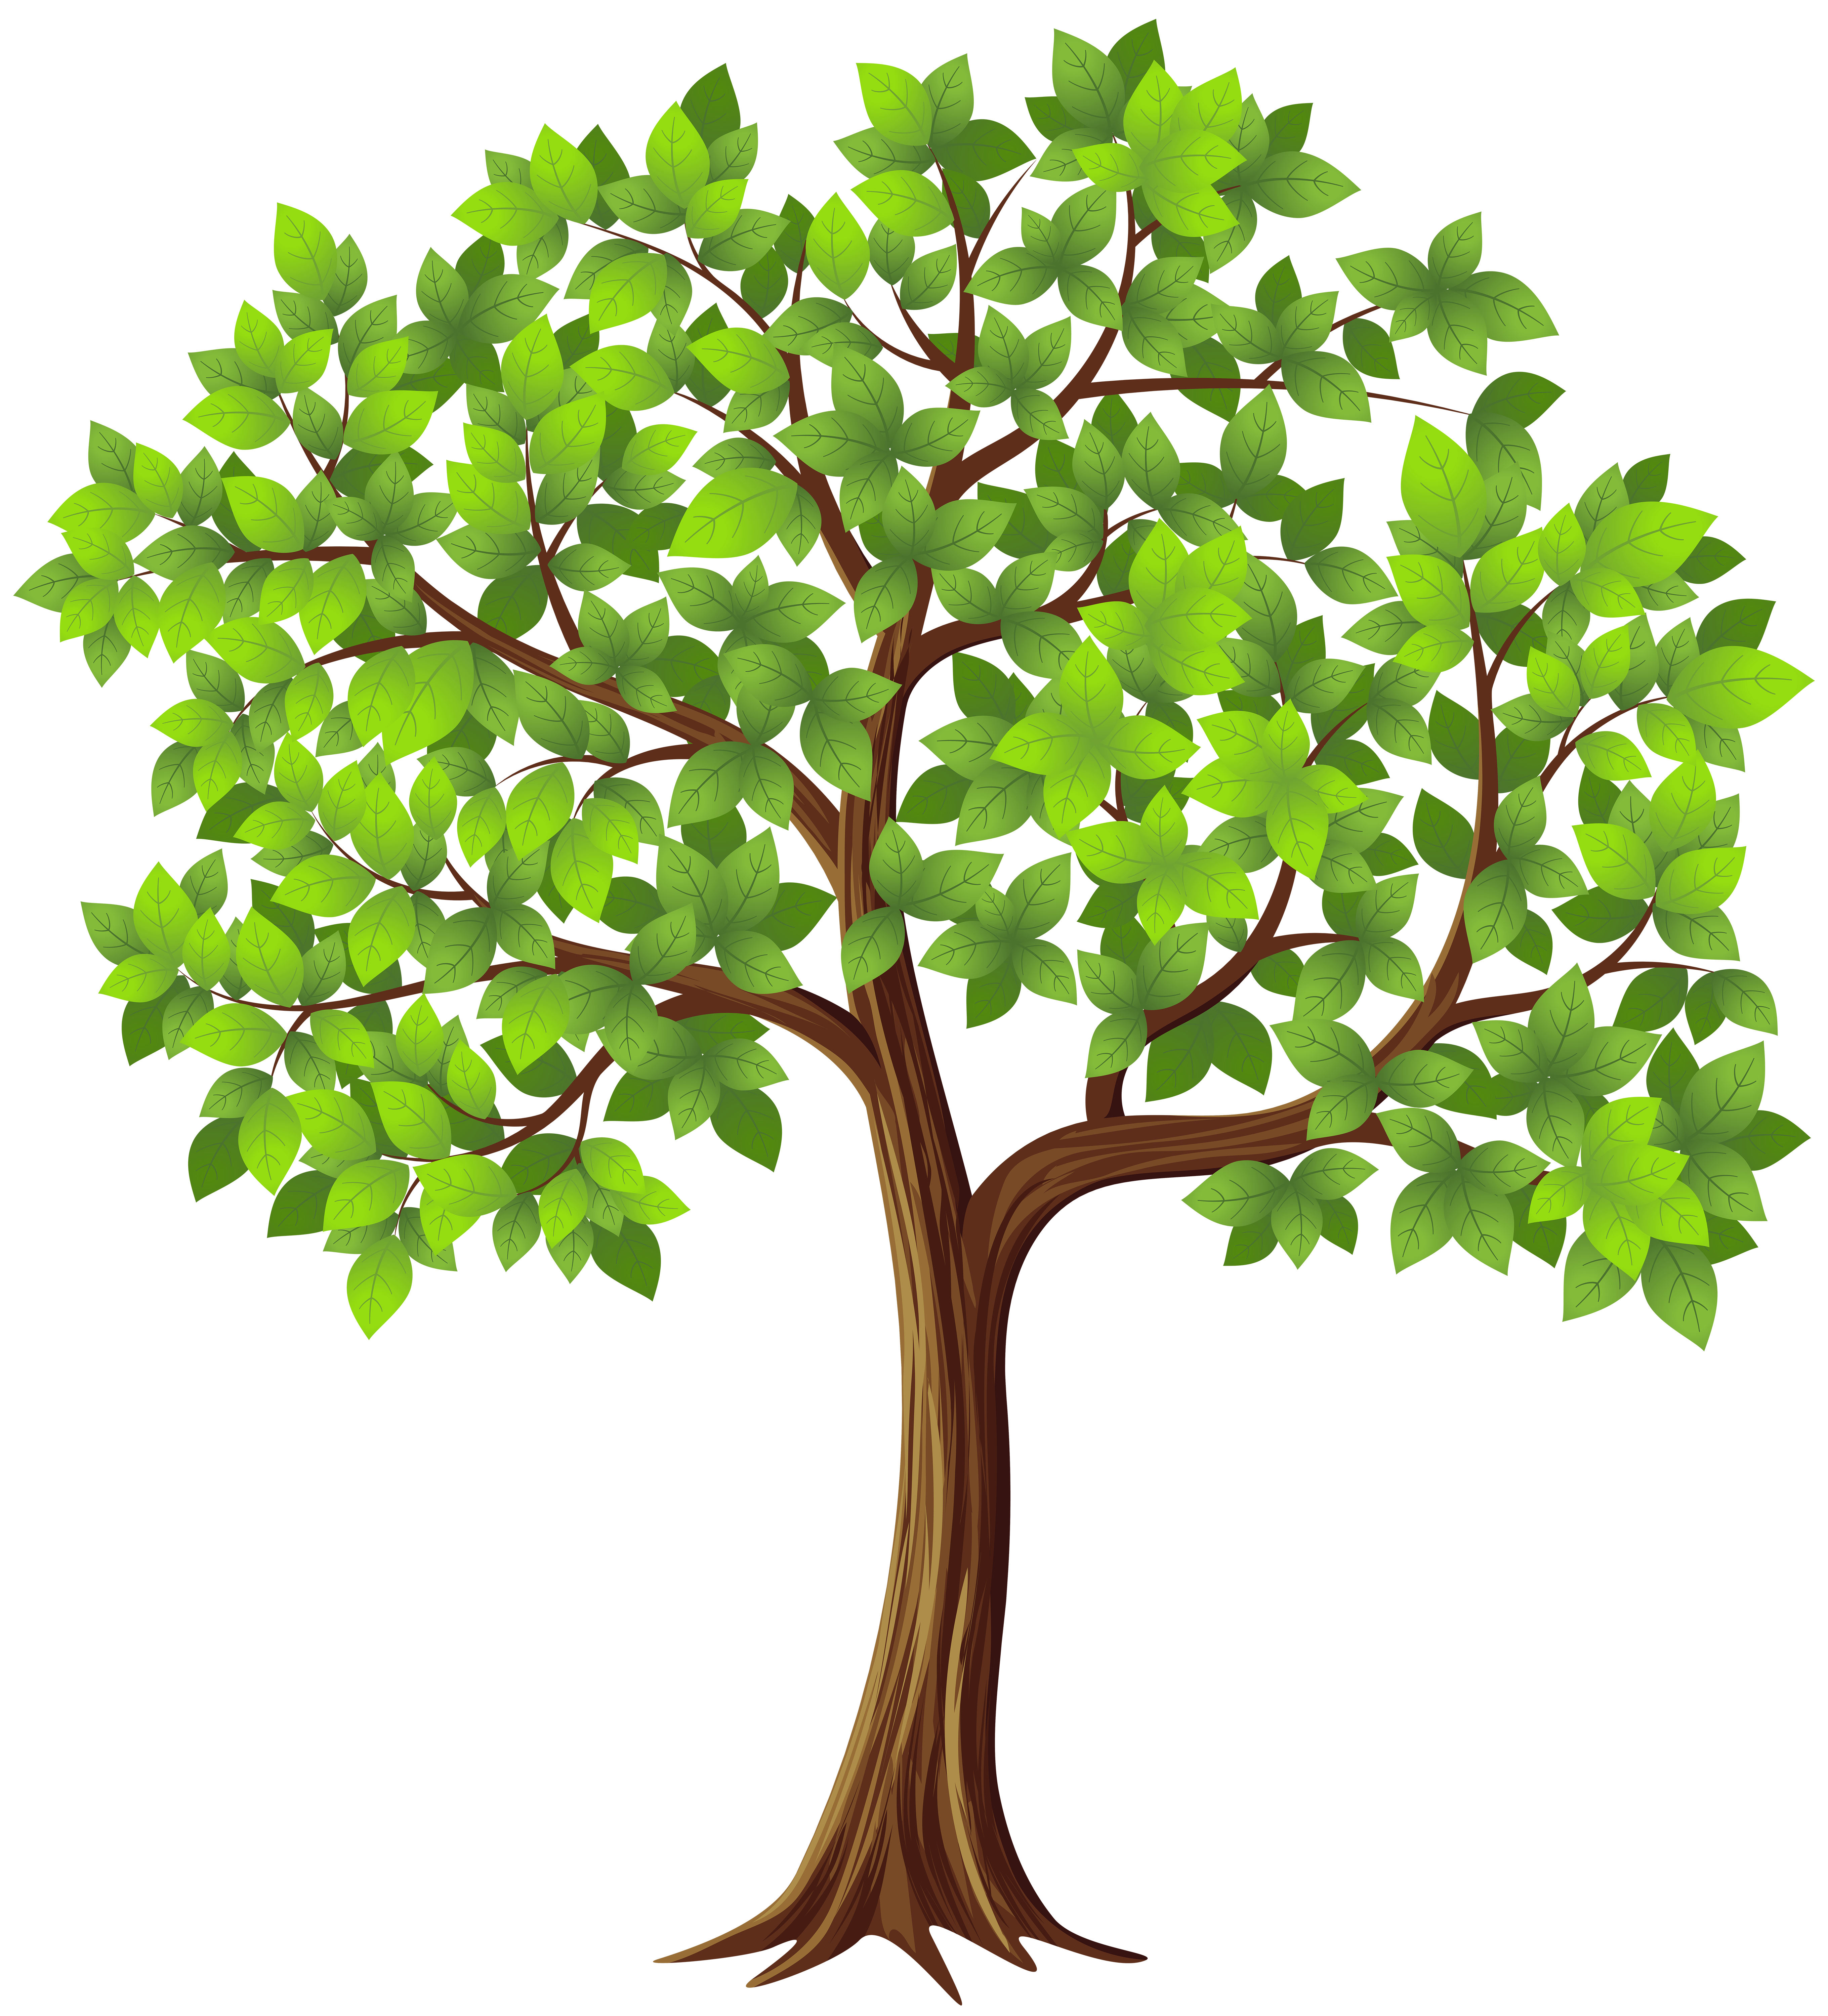 5440x6000 Edit And Free Download Tree Png Transparent Clip Art Image